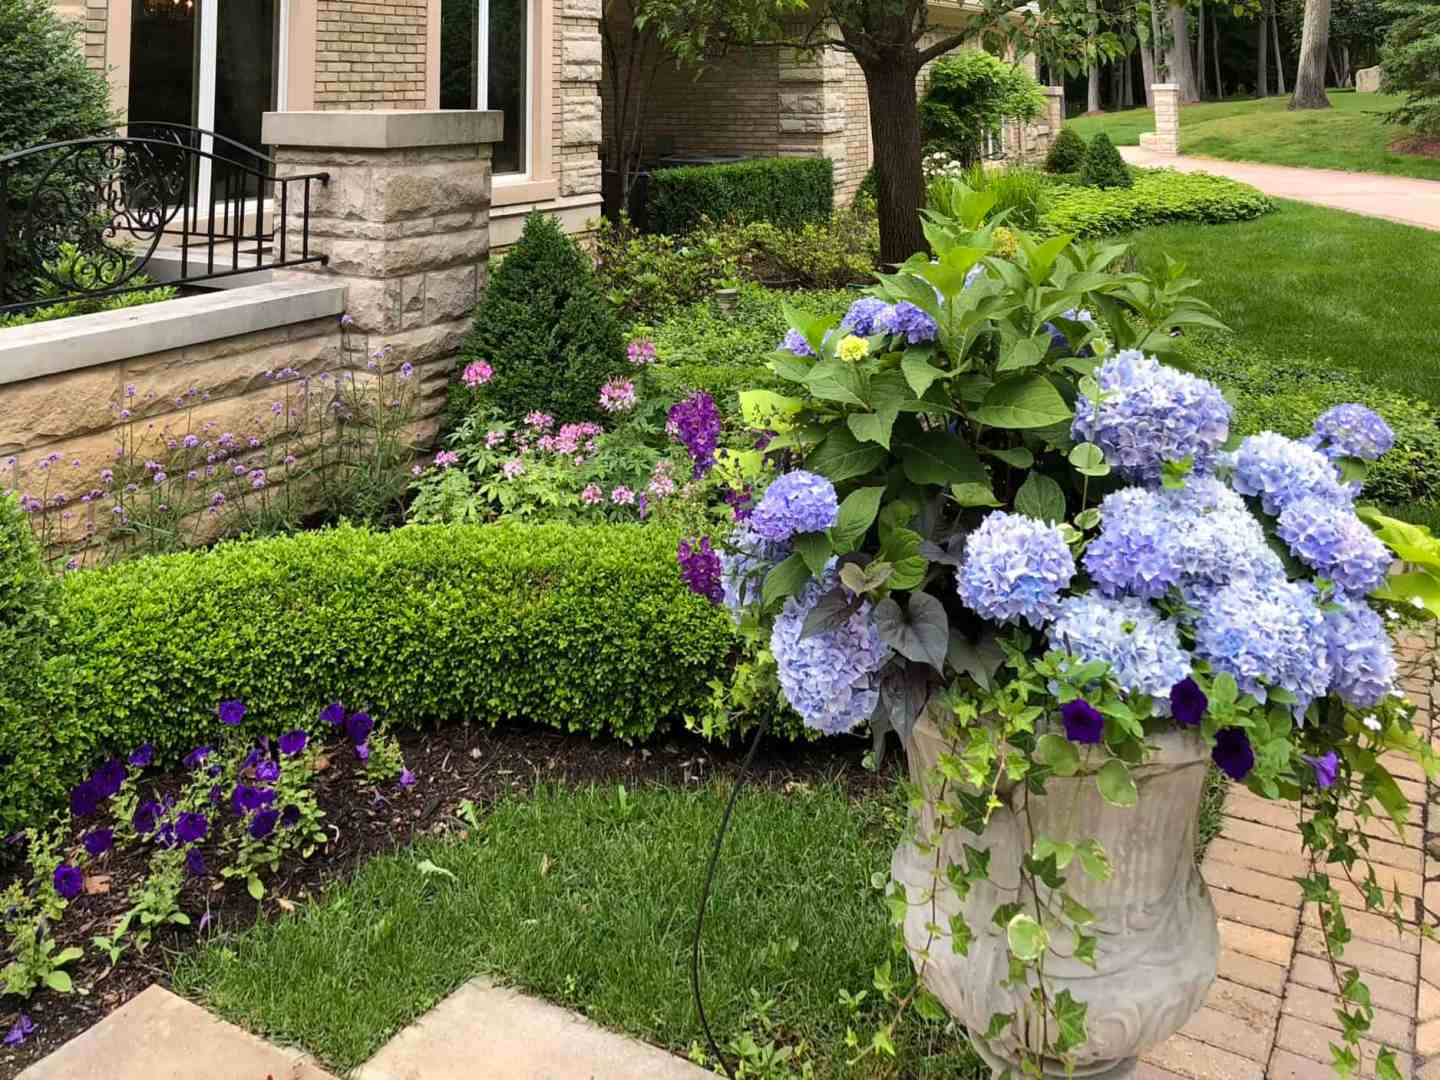 Highland Horticultural Services provides gardening, consultation, and drainage services.